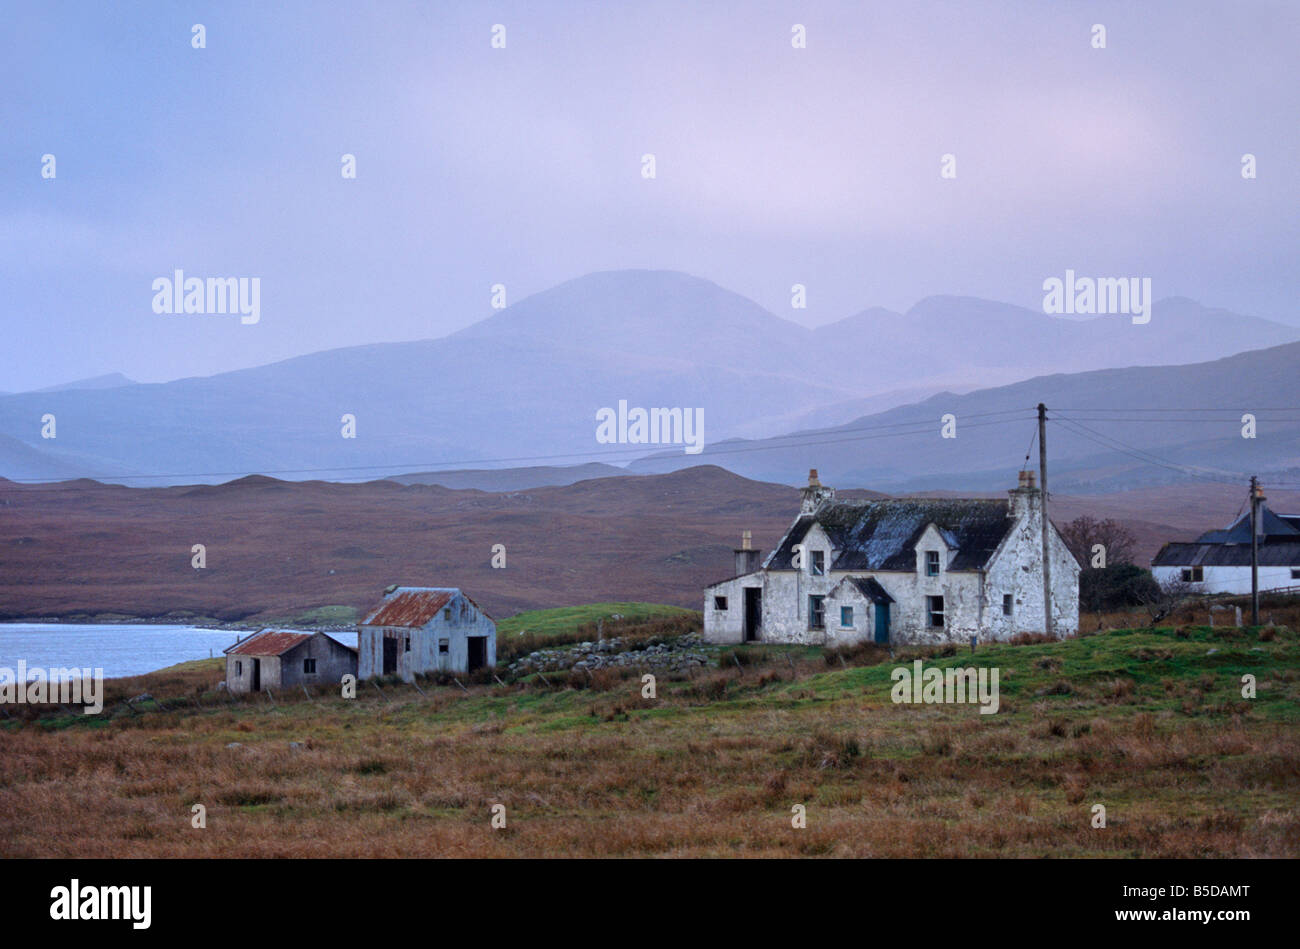 House near Achmore (Acha Mor). North Harris hills in the distance, Isle of Lewis, Outer Hebrides, Scotland, Europe - Stock Image